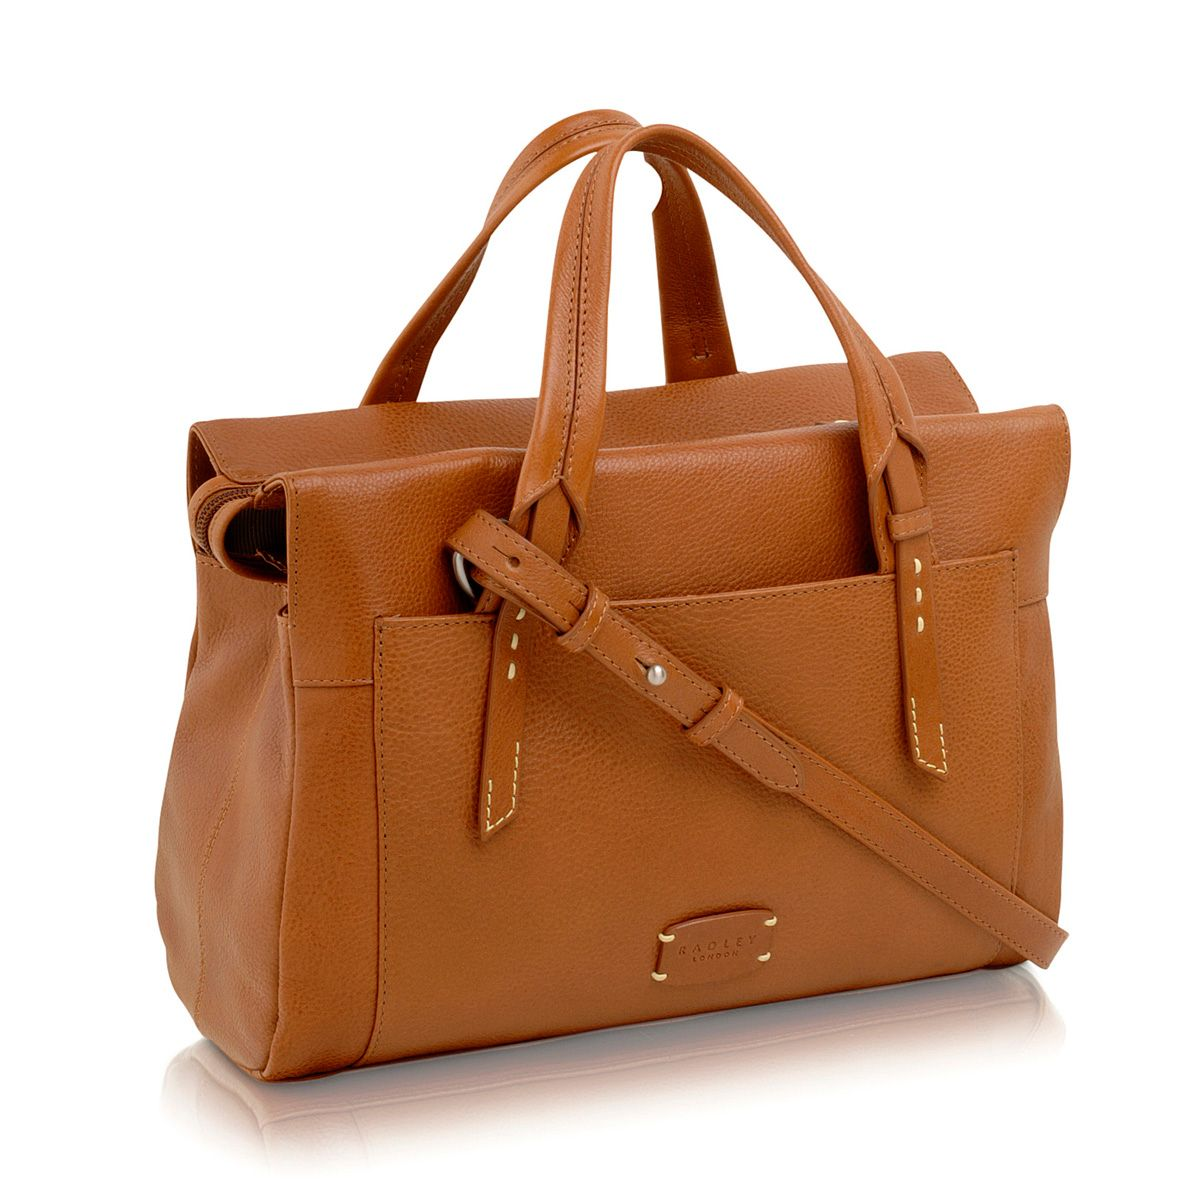 Barnsley tan medium cross body tote bag